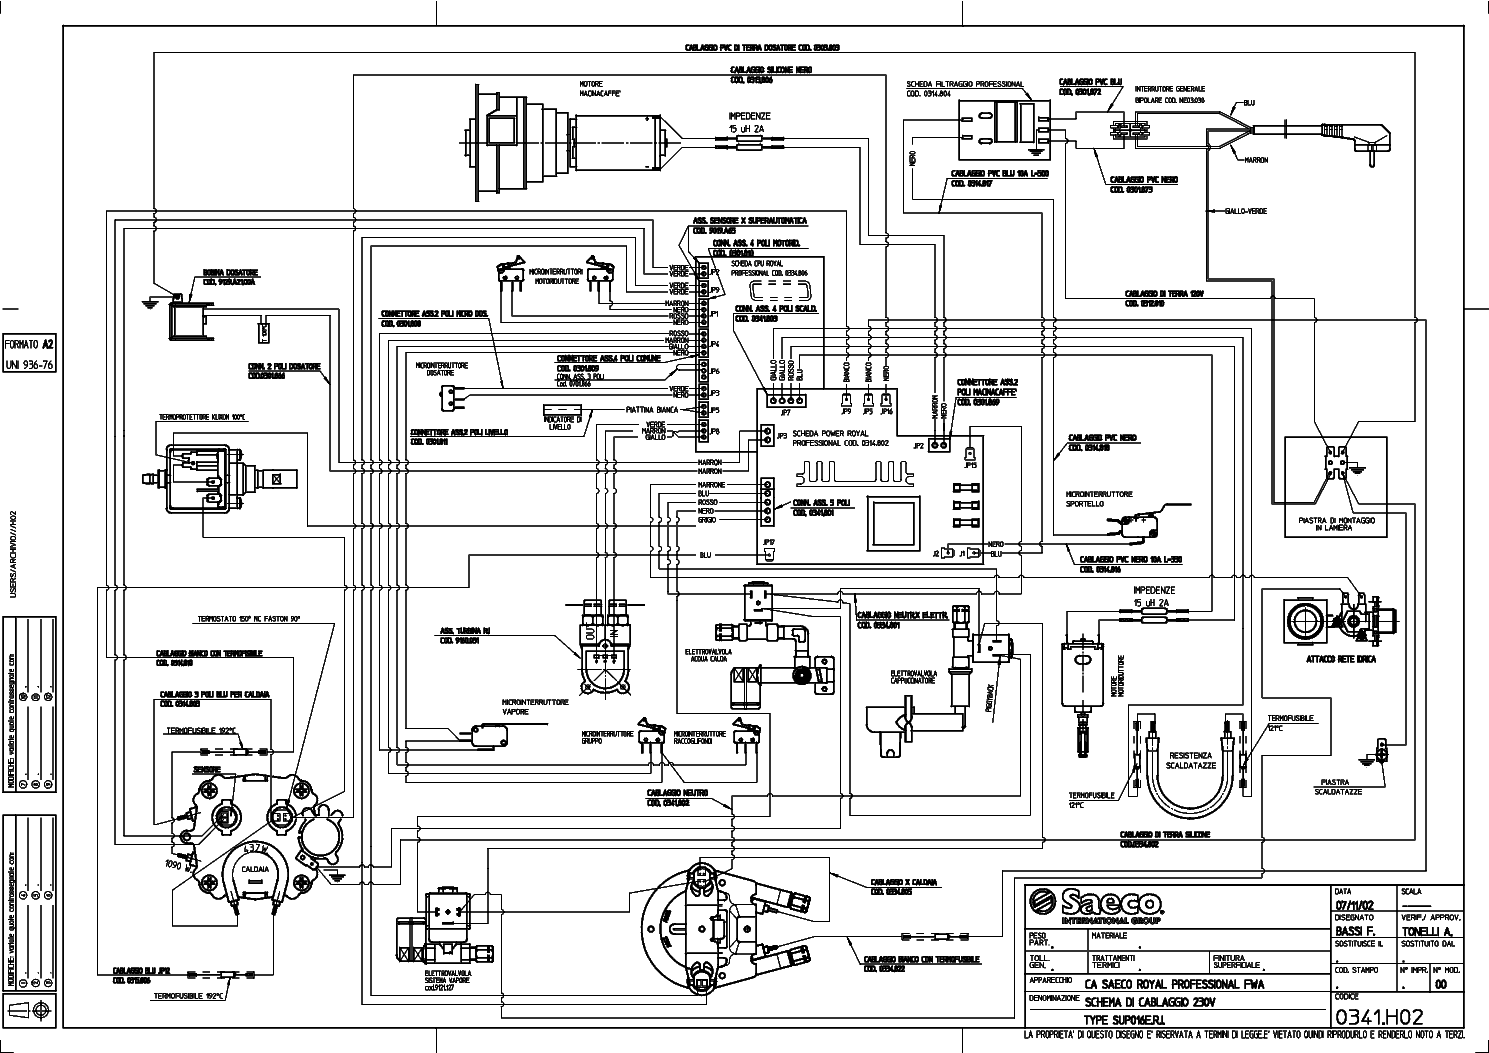 SAECO INCANTO Service Manual free download, schematics